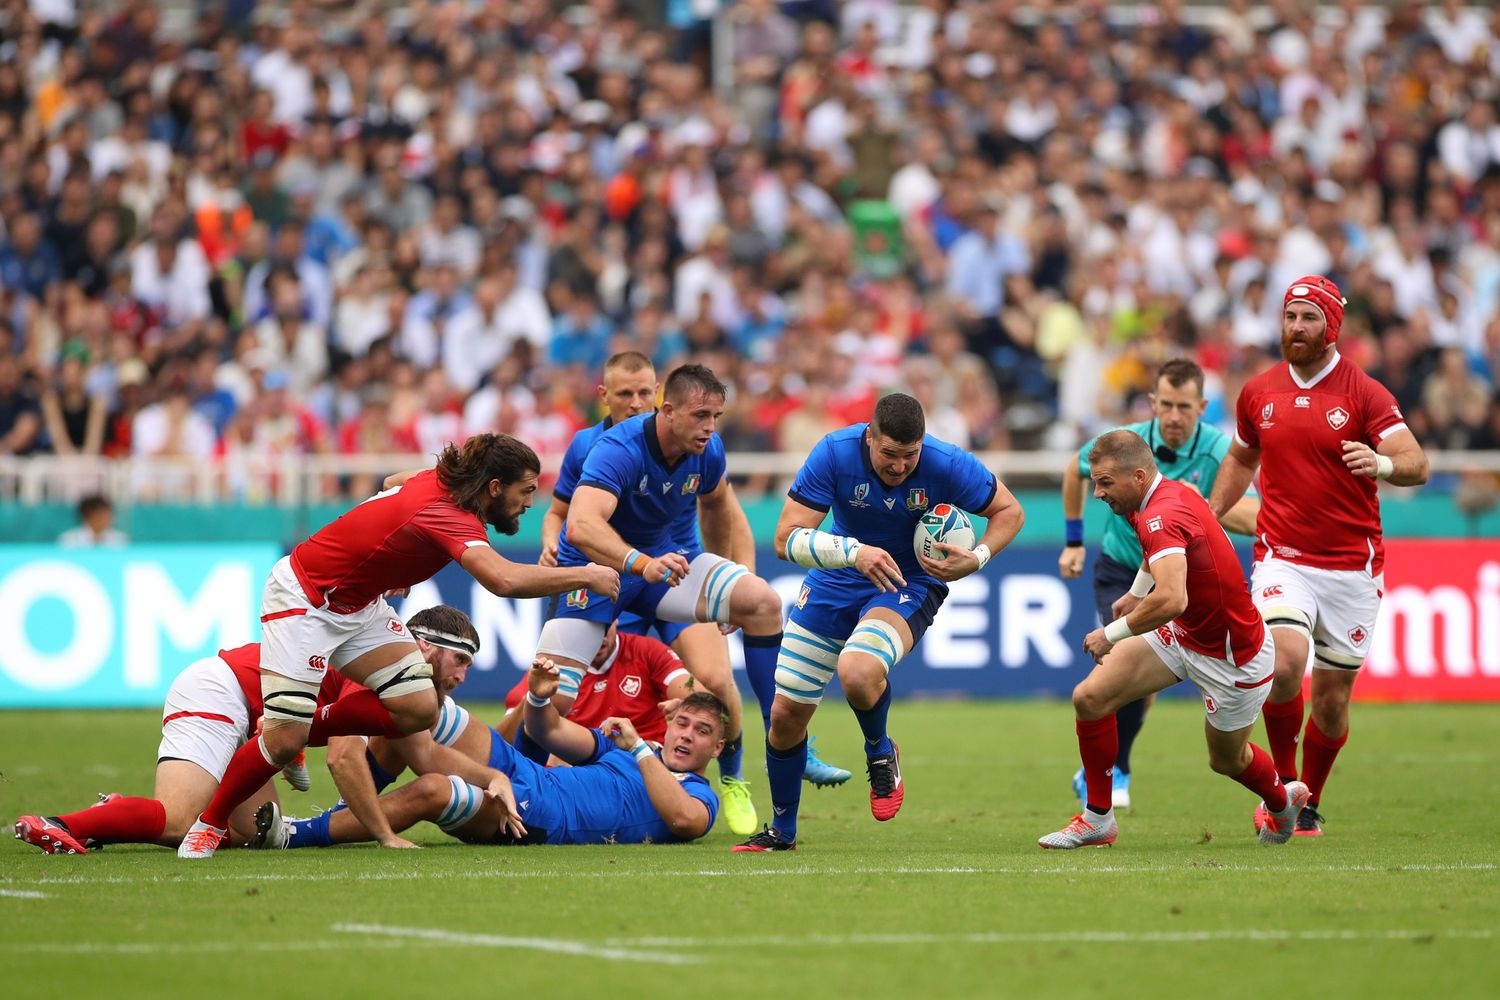 Italy v Canada - Rugby World Cup 2019: Group B